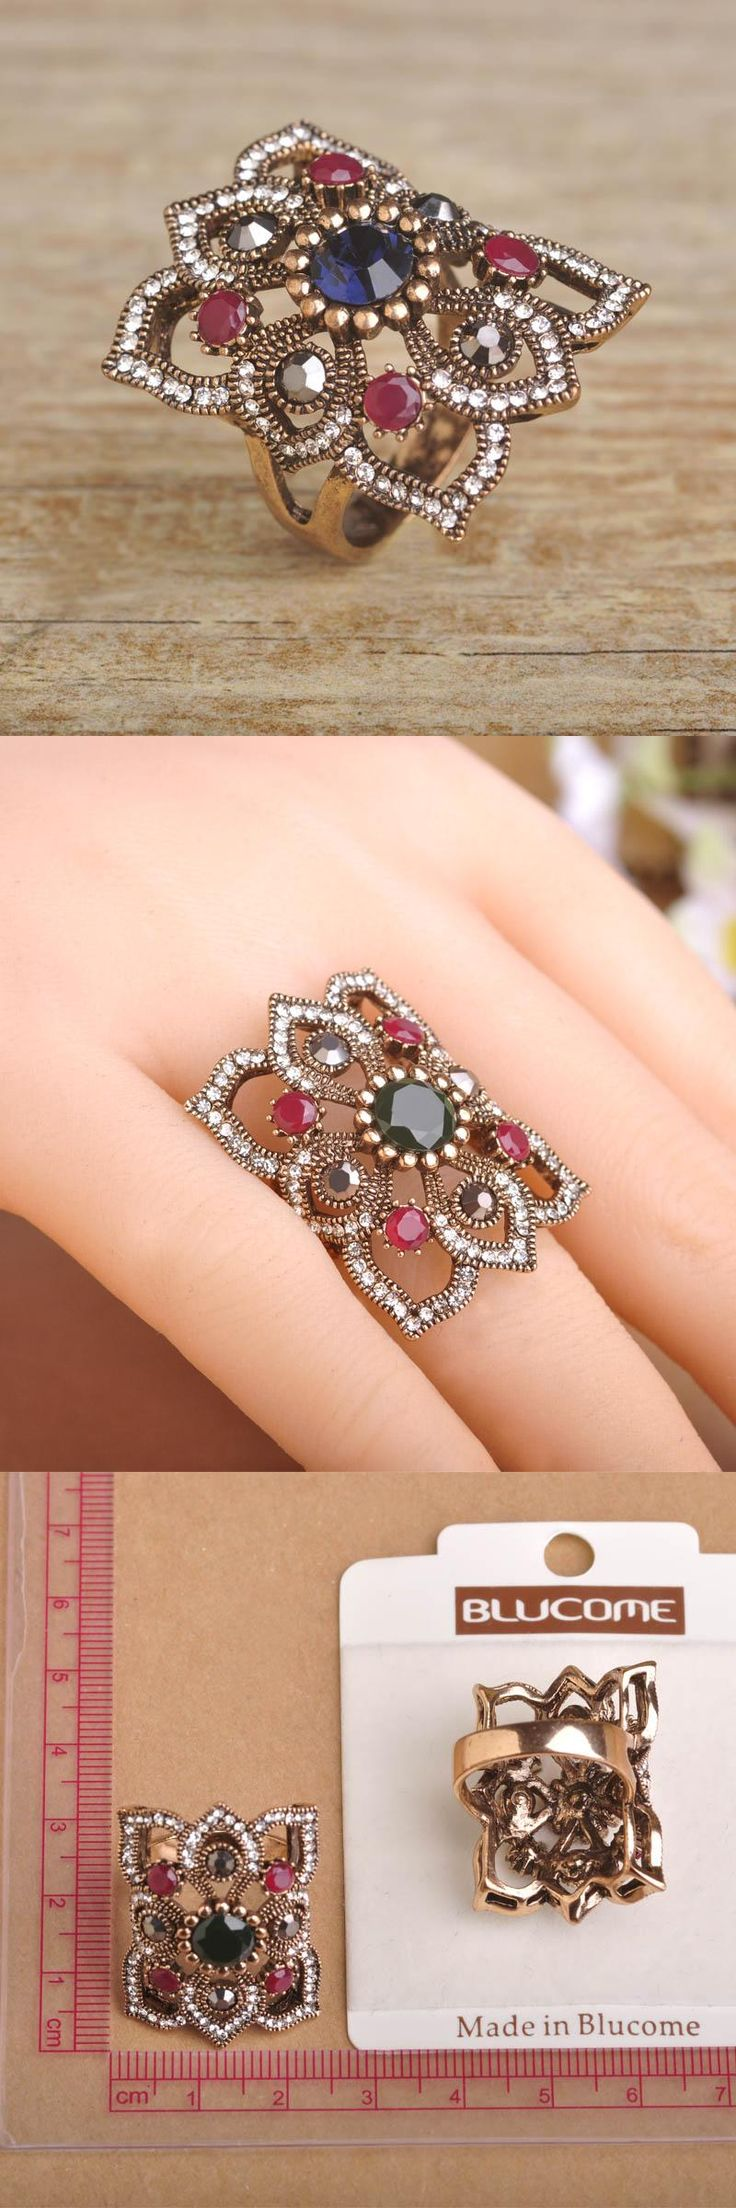 [Visit to Buy] Blucome Luxurious Vintage Square Shaped Ring With Stone Turkish Aneis Exquisite Rings Phalanges For Women Engagement Accessories #Advertisement